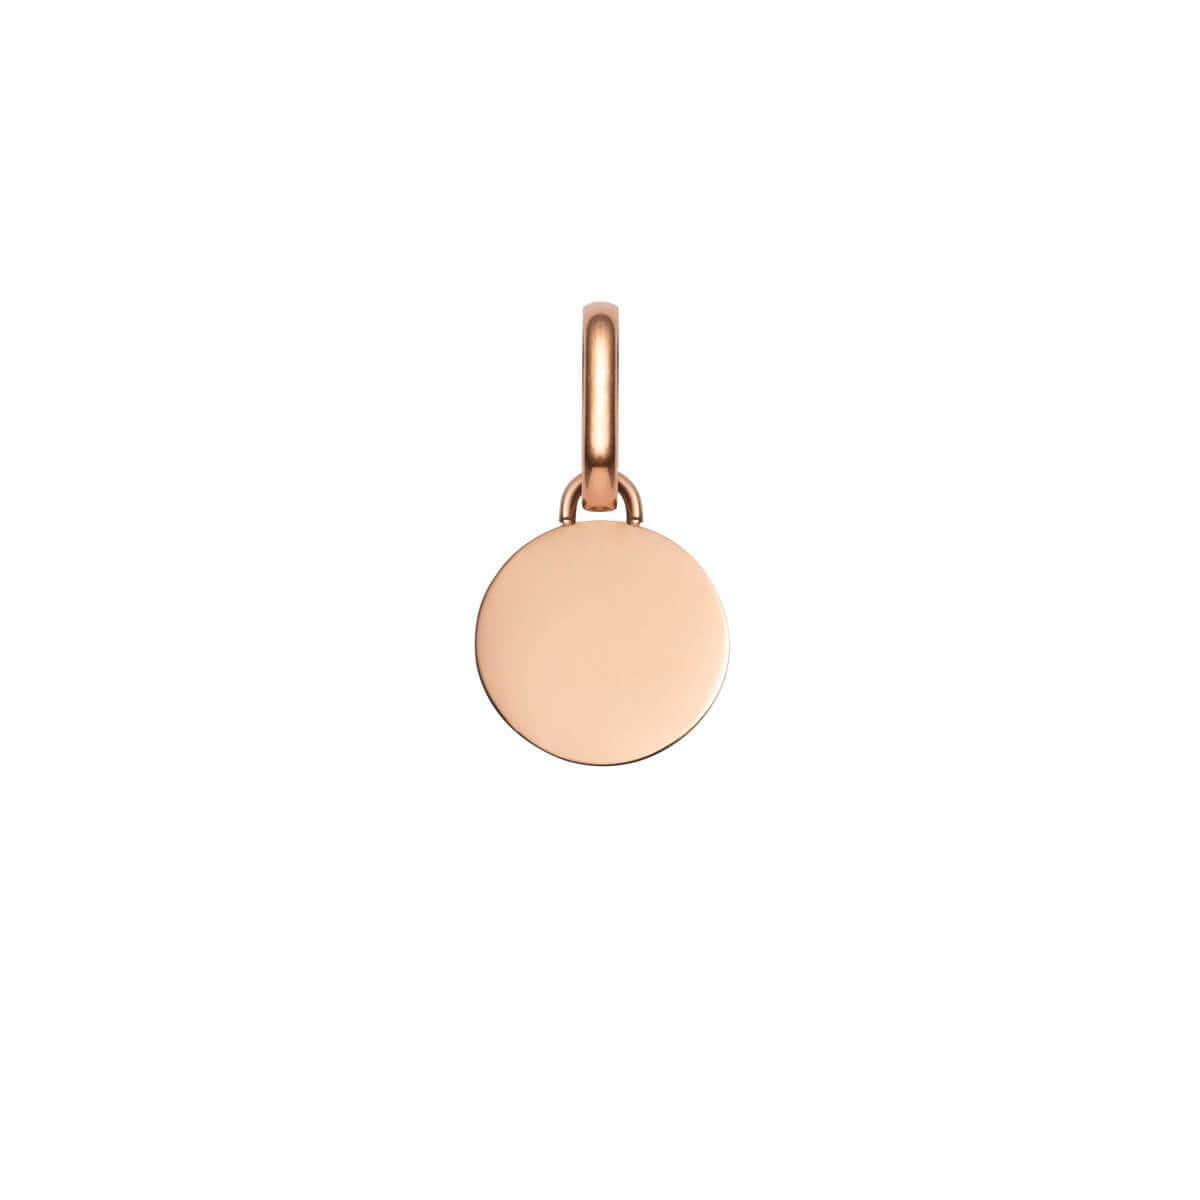 Selected Circular Pendant (Rose Gold)